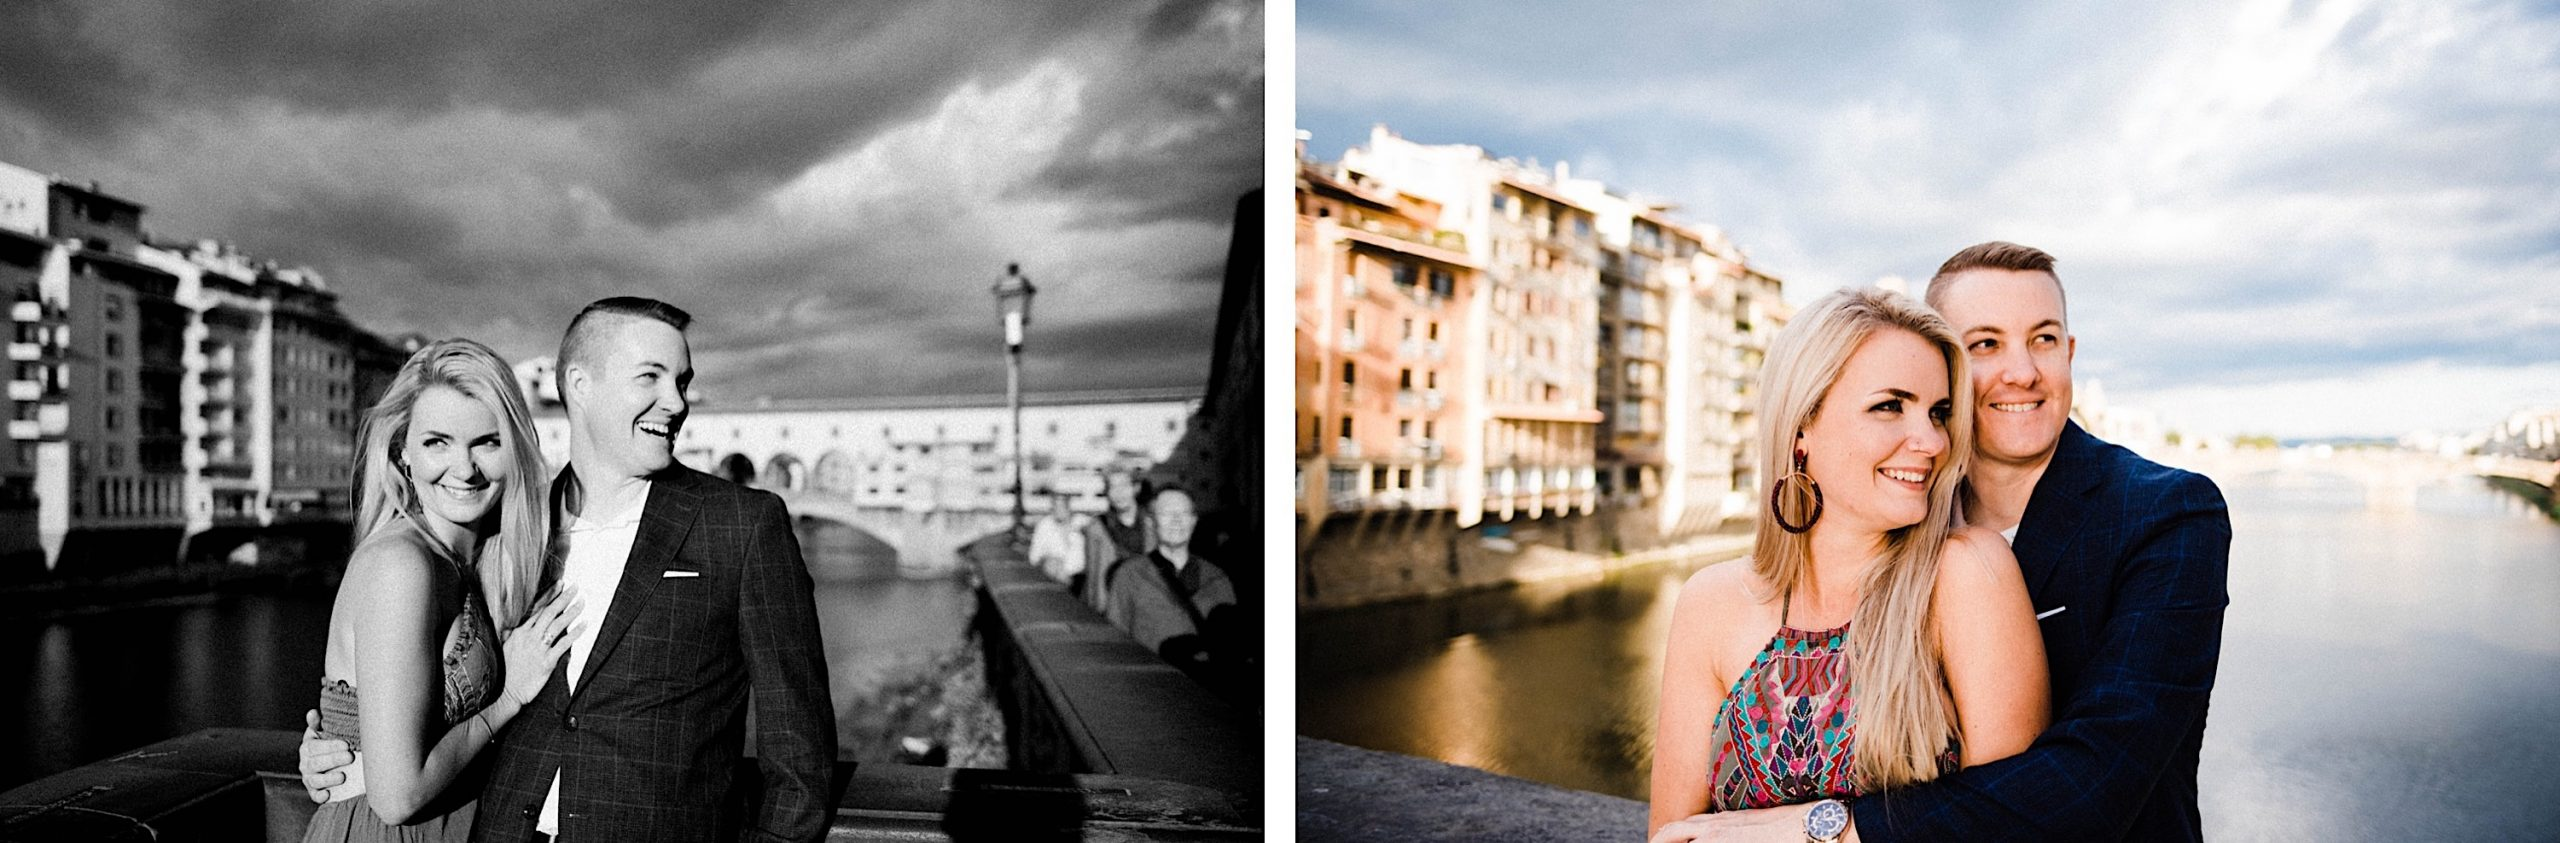 A couple laughs and smiles. In the background, a storm rolls in over the Arno River and Ponte Vecchio in Florence.